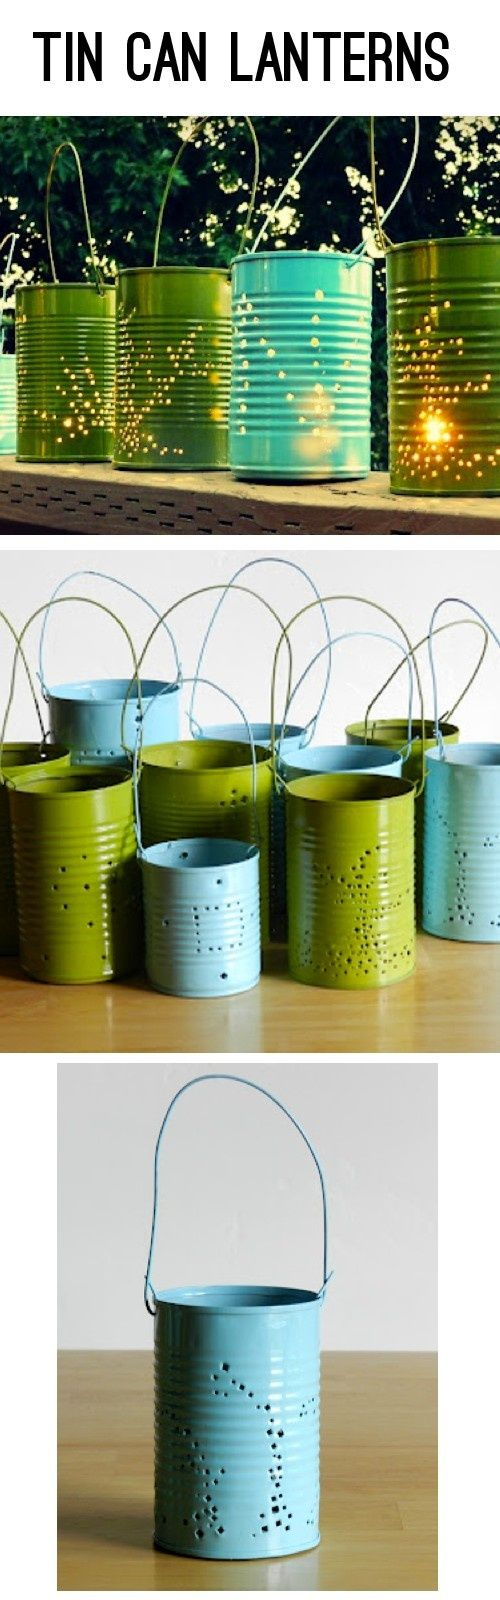 can lanterns for deck. Such a great Summer feeling and fun to do!